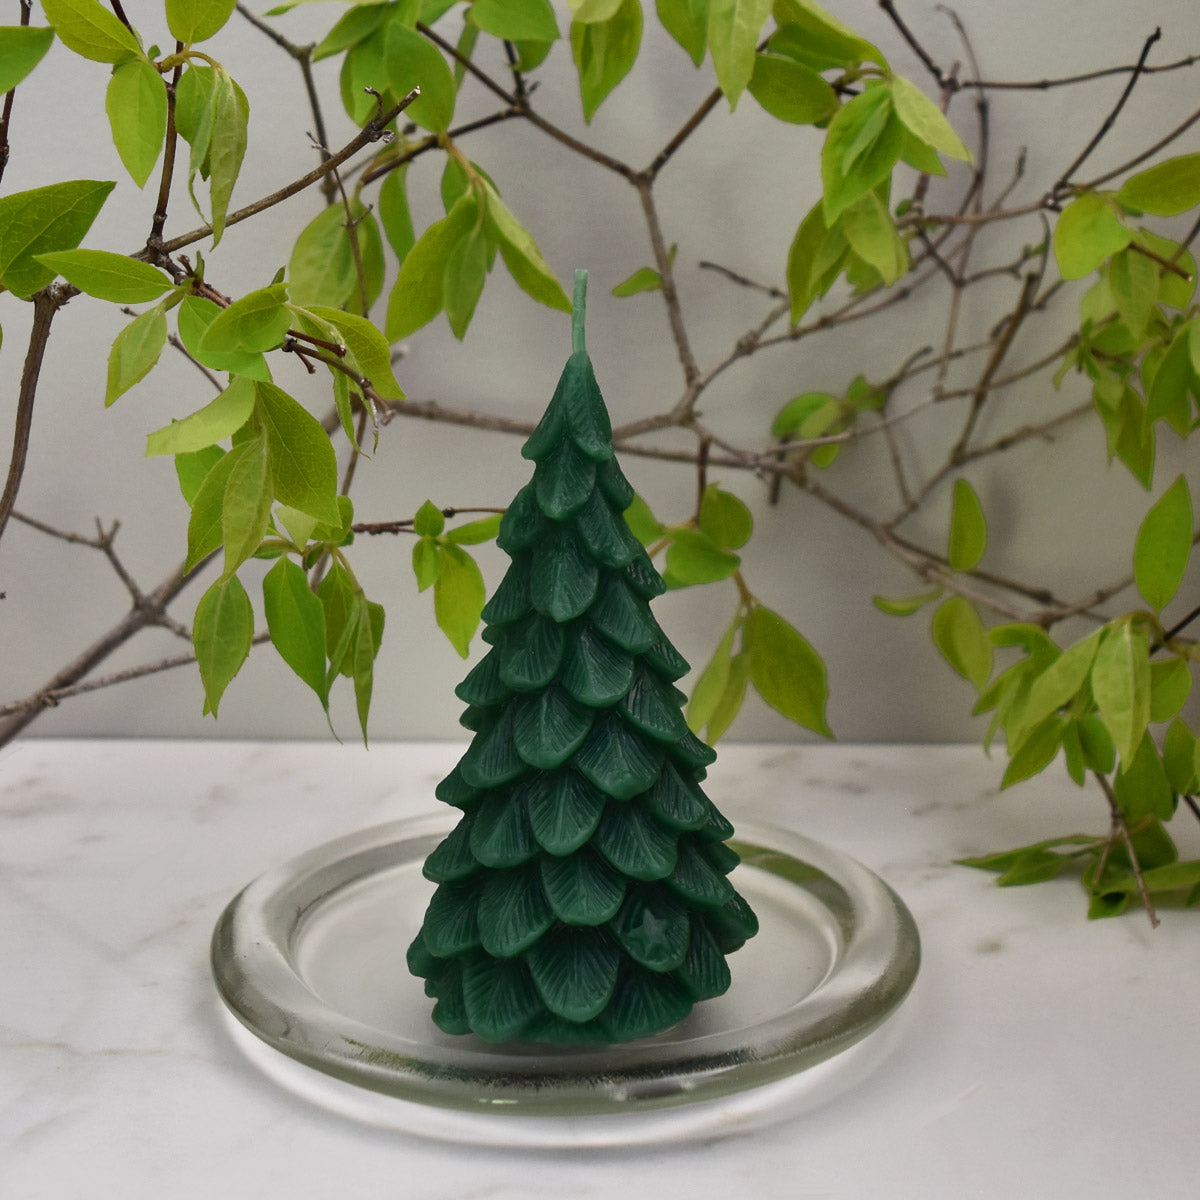 Green beeswax ornamental tree on glass plate